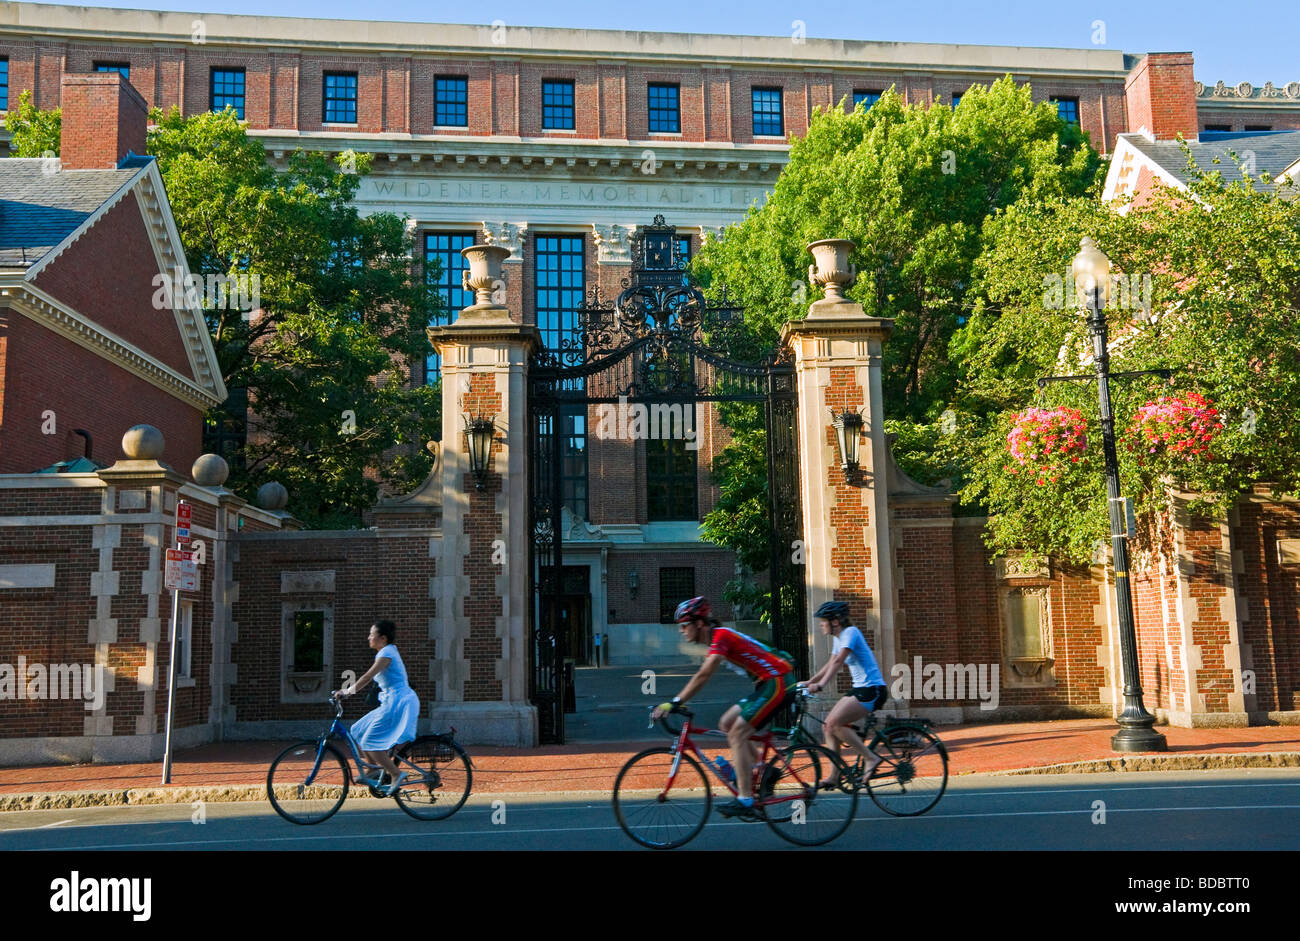 People biking in front of Harvard University on Massachusetts avenue Boston - Stock Image